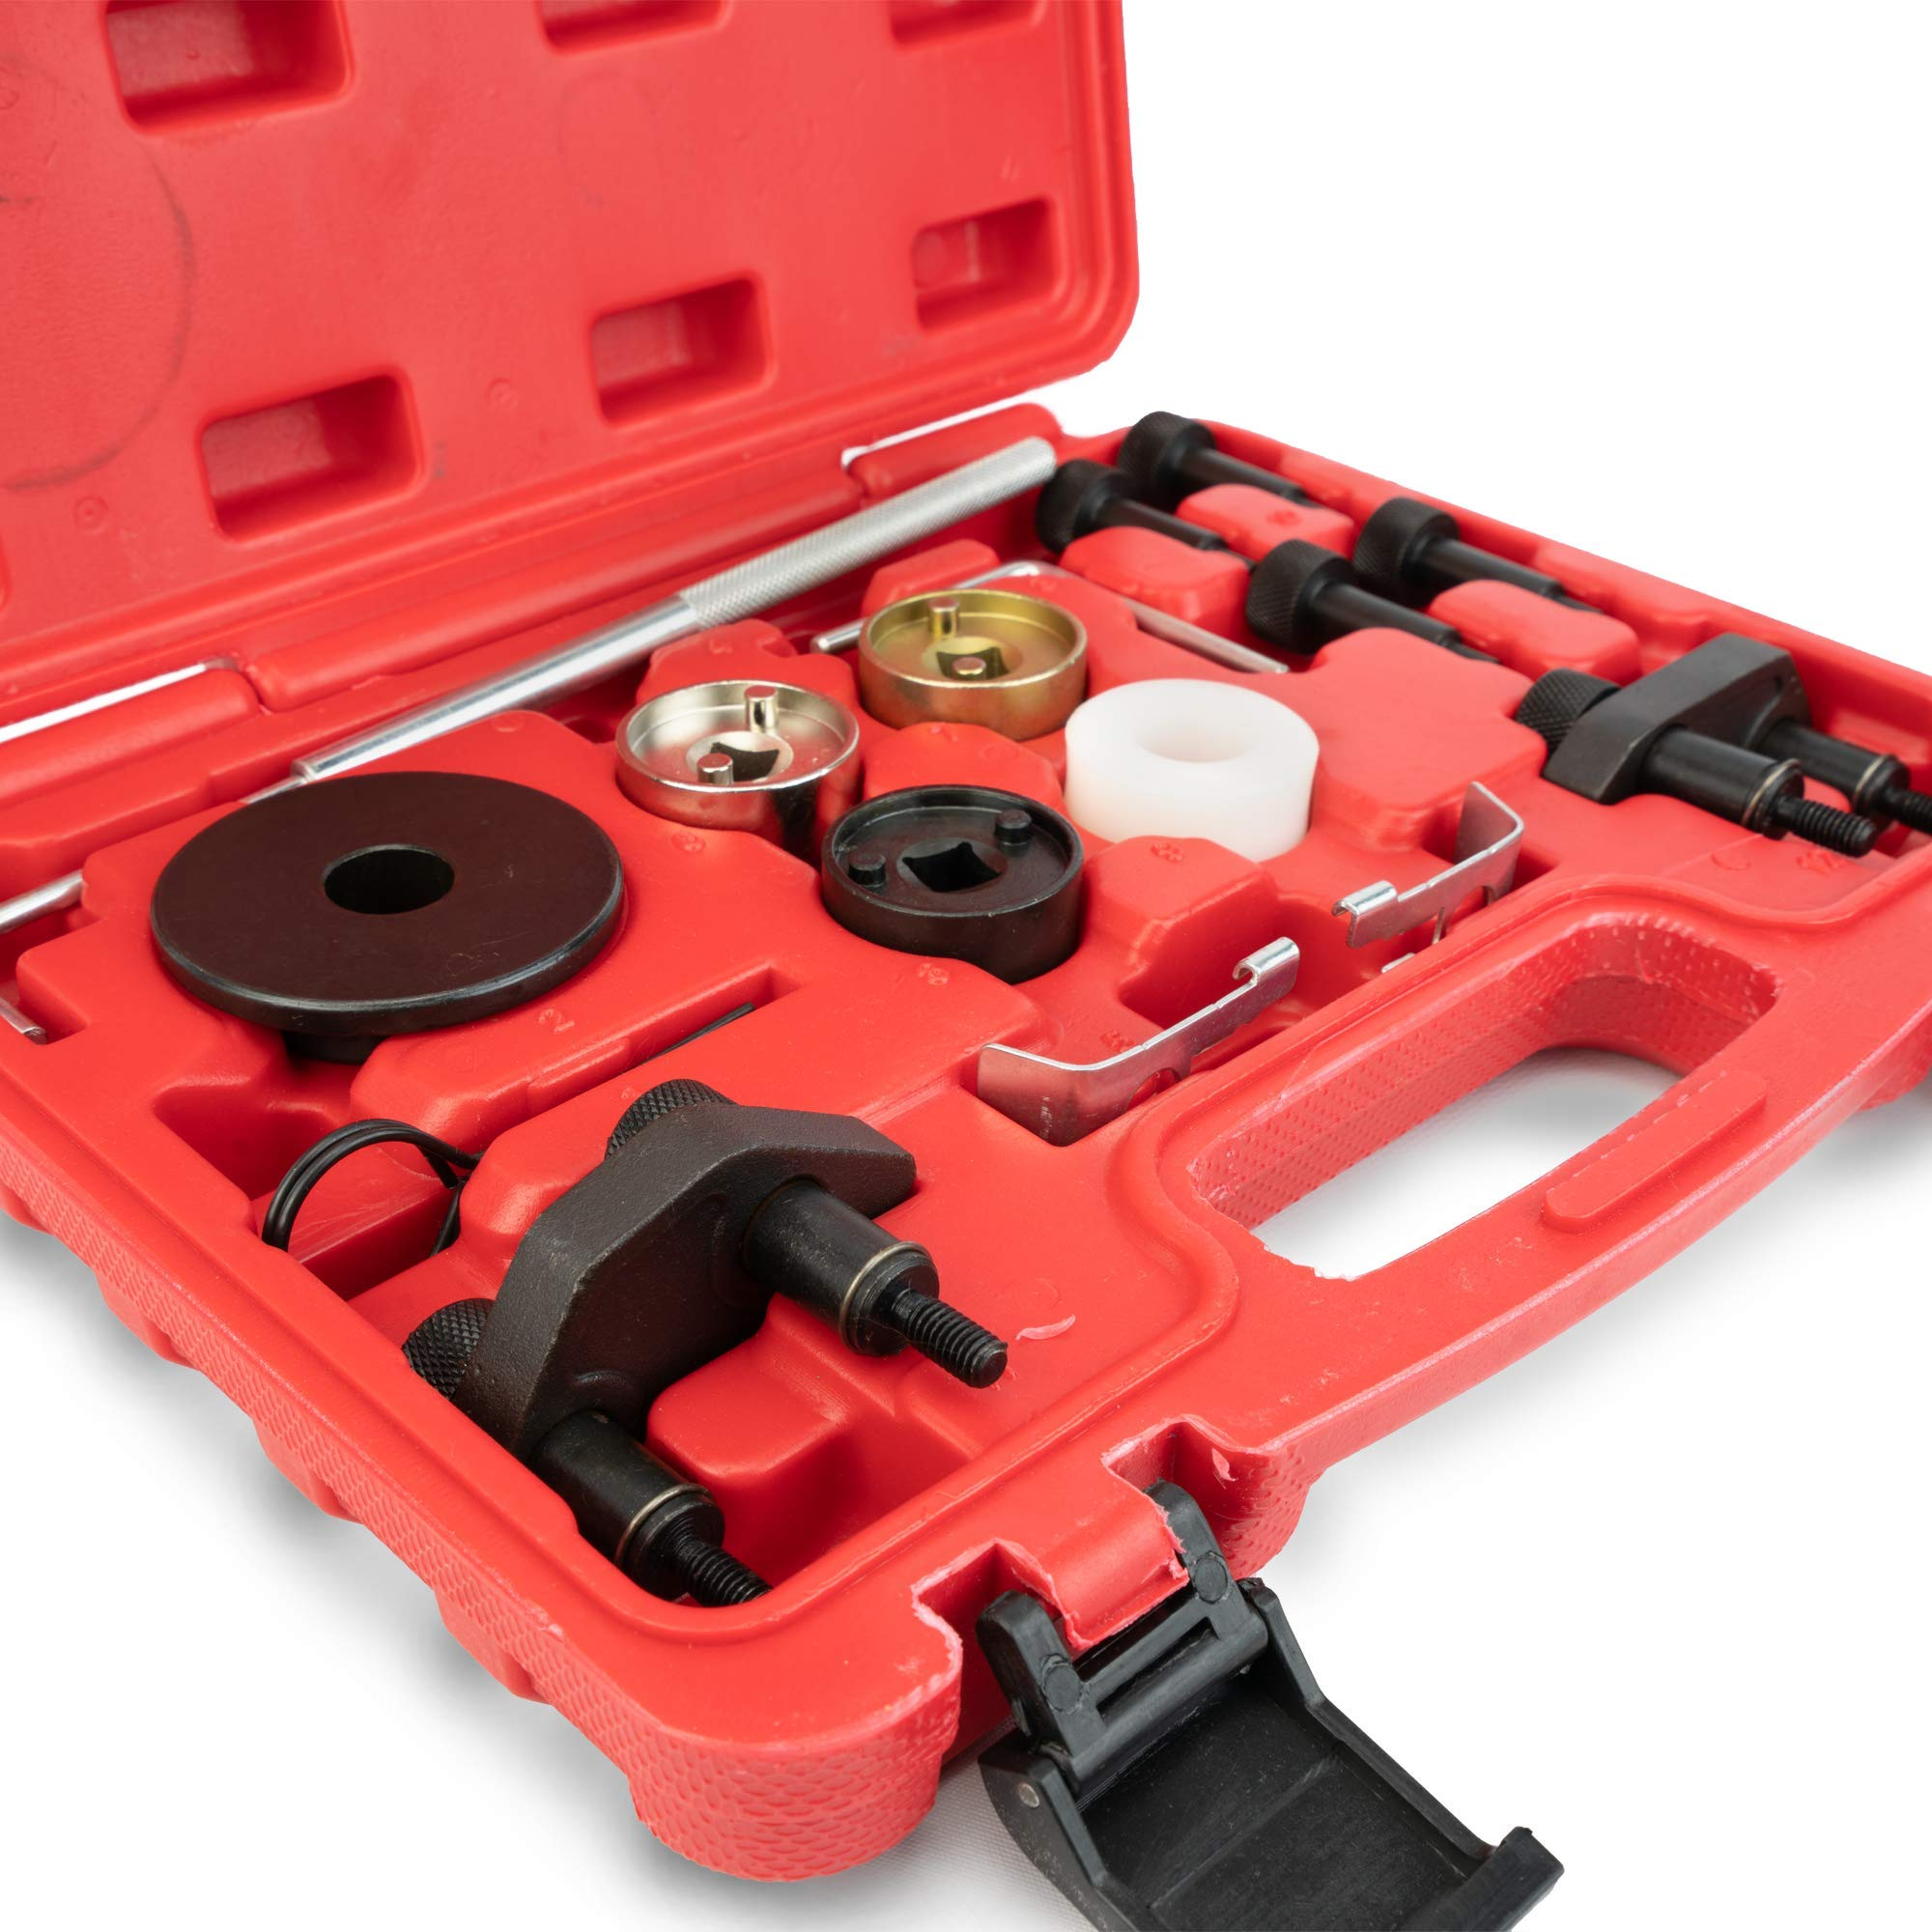 Replacement VAG Volkswagen Audi Timing Tool Kit - 1.8L, 2.0L R4 16V Turbo TSI, TSFI EA888 Engine - Replaces# T10352, T10368, T40098, T40011 & More - Audi Camshaft & Crankshaft Timing Position by Delray Auto Parts (Image #6)